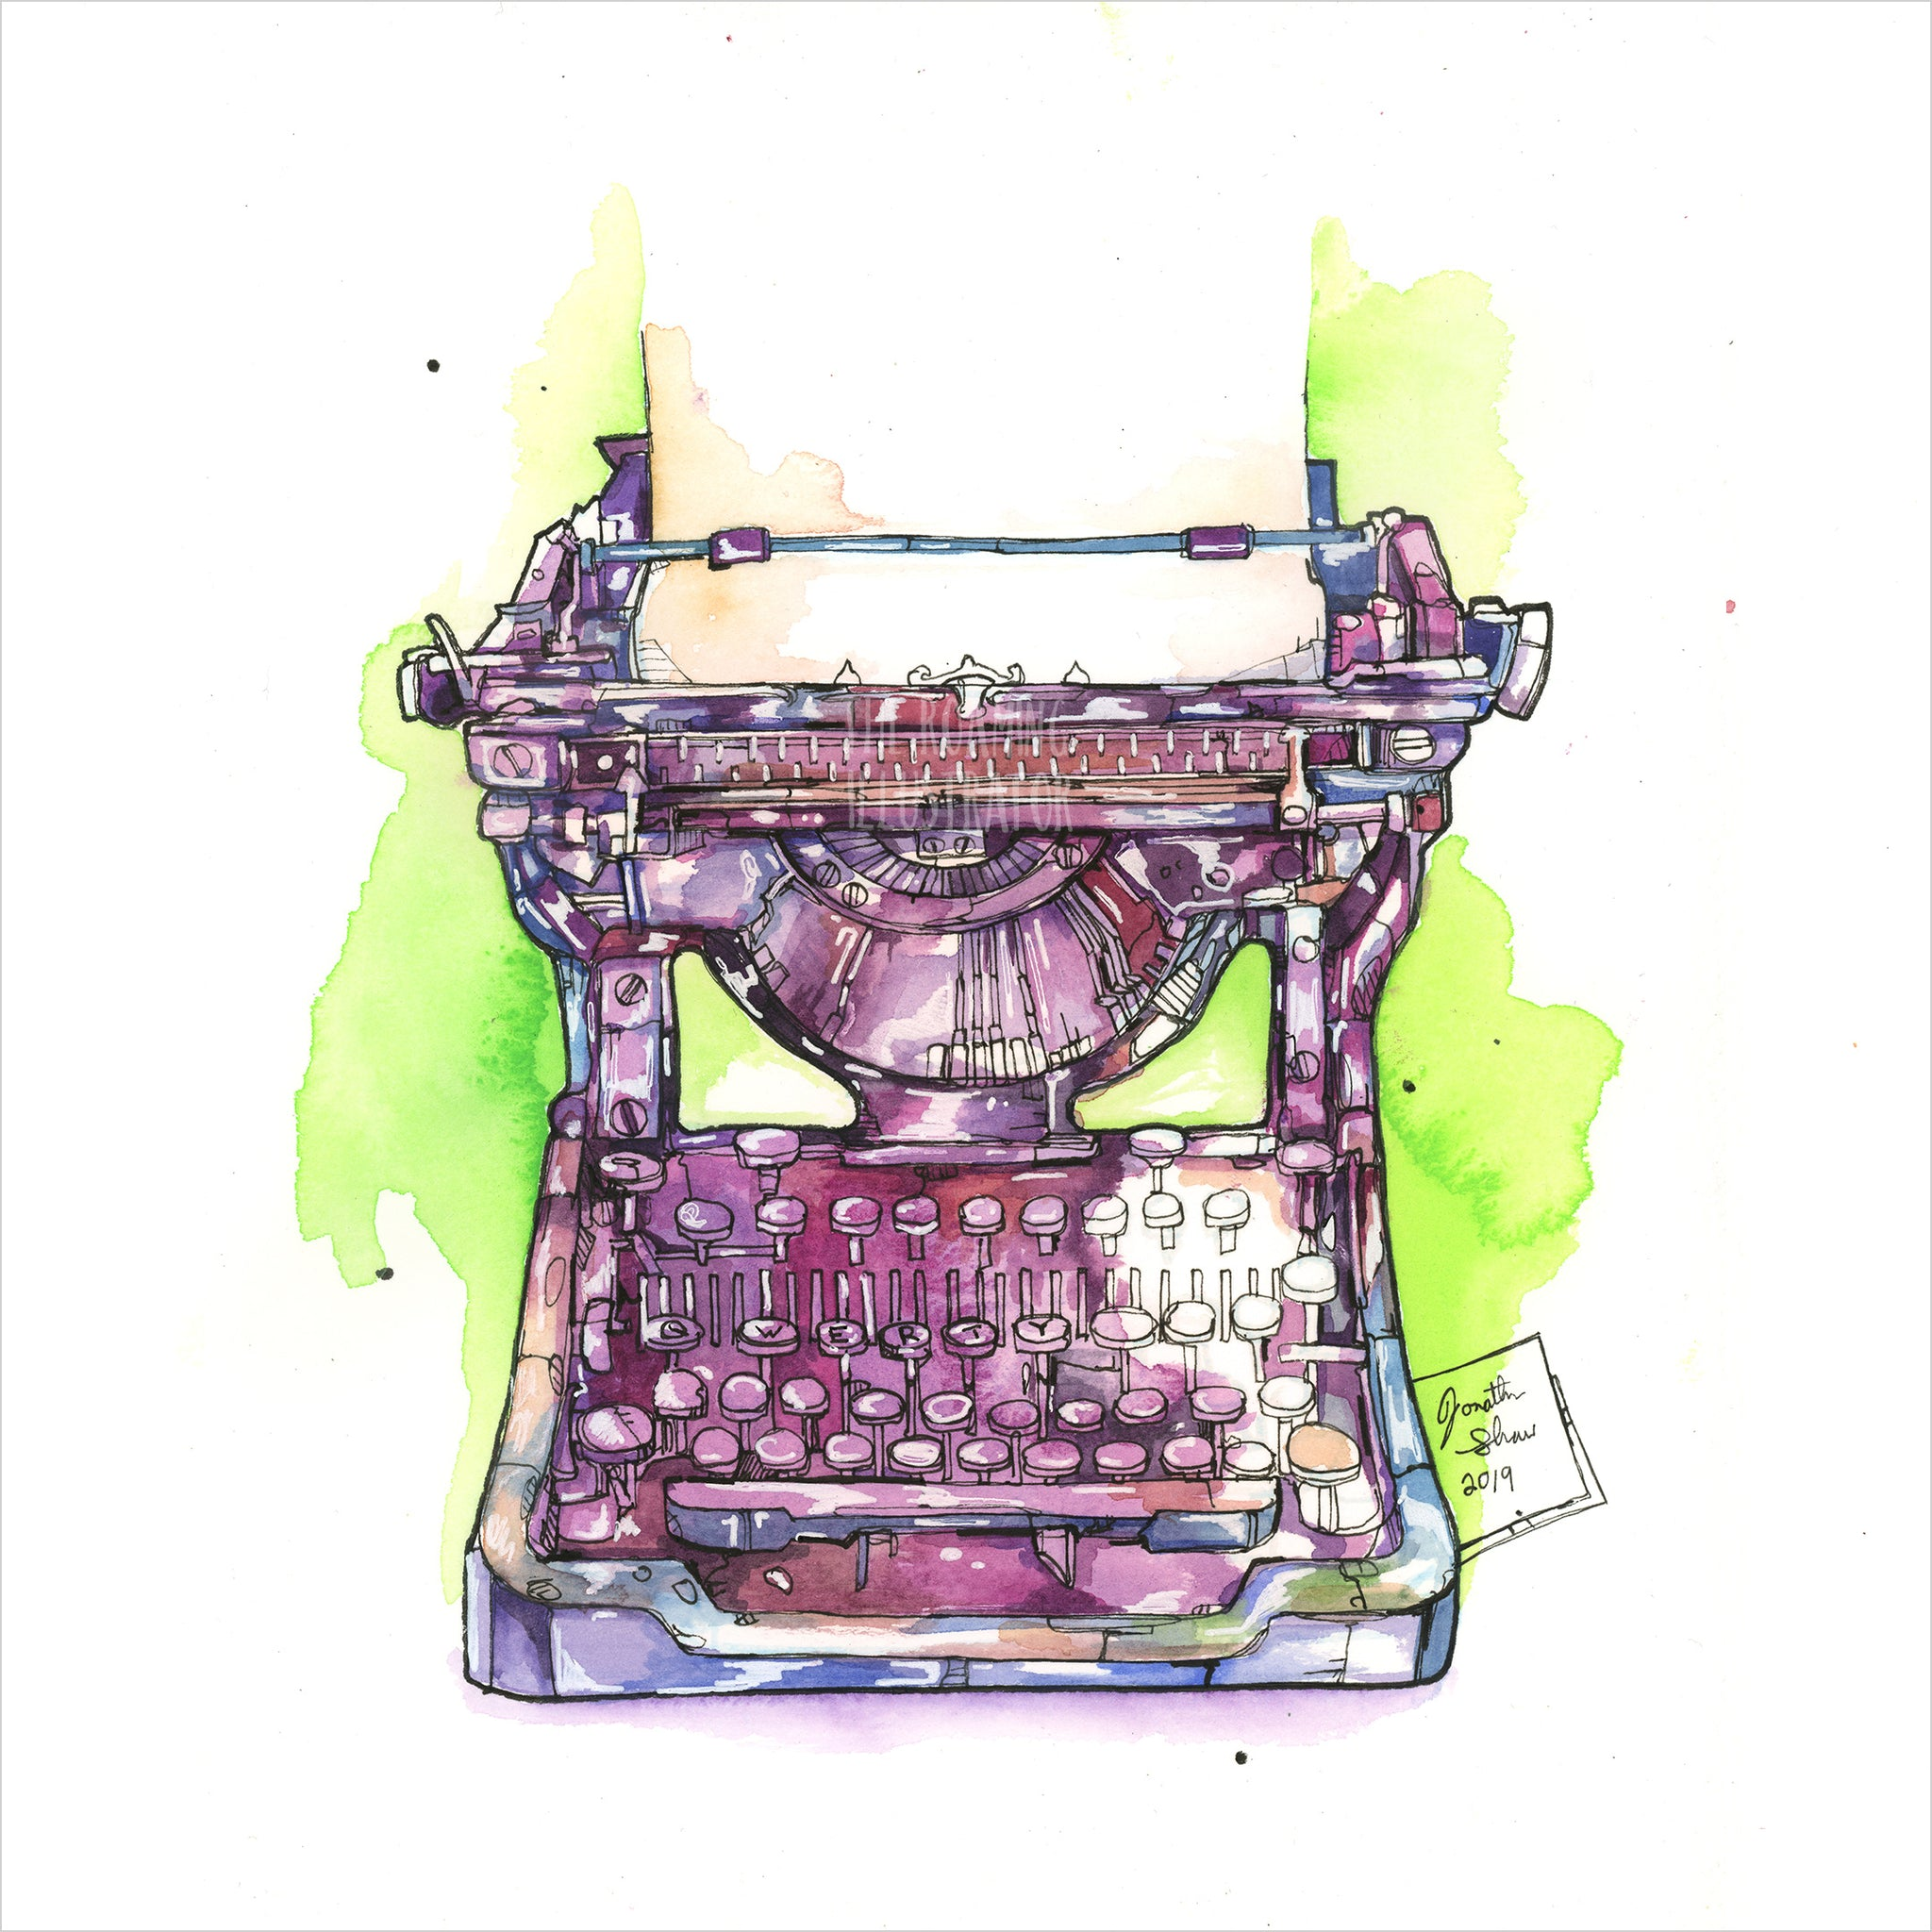 """Typewriter"" - 8x10 Reproduction Print"